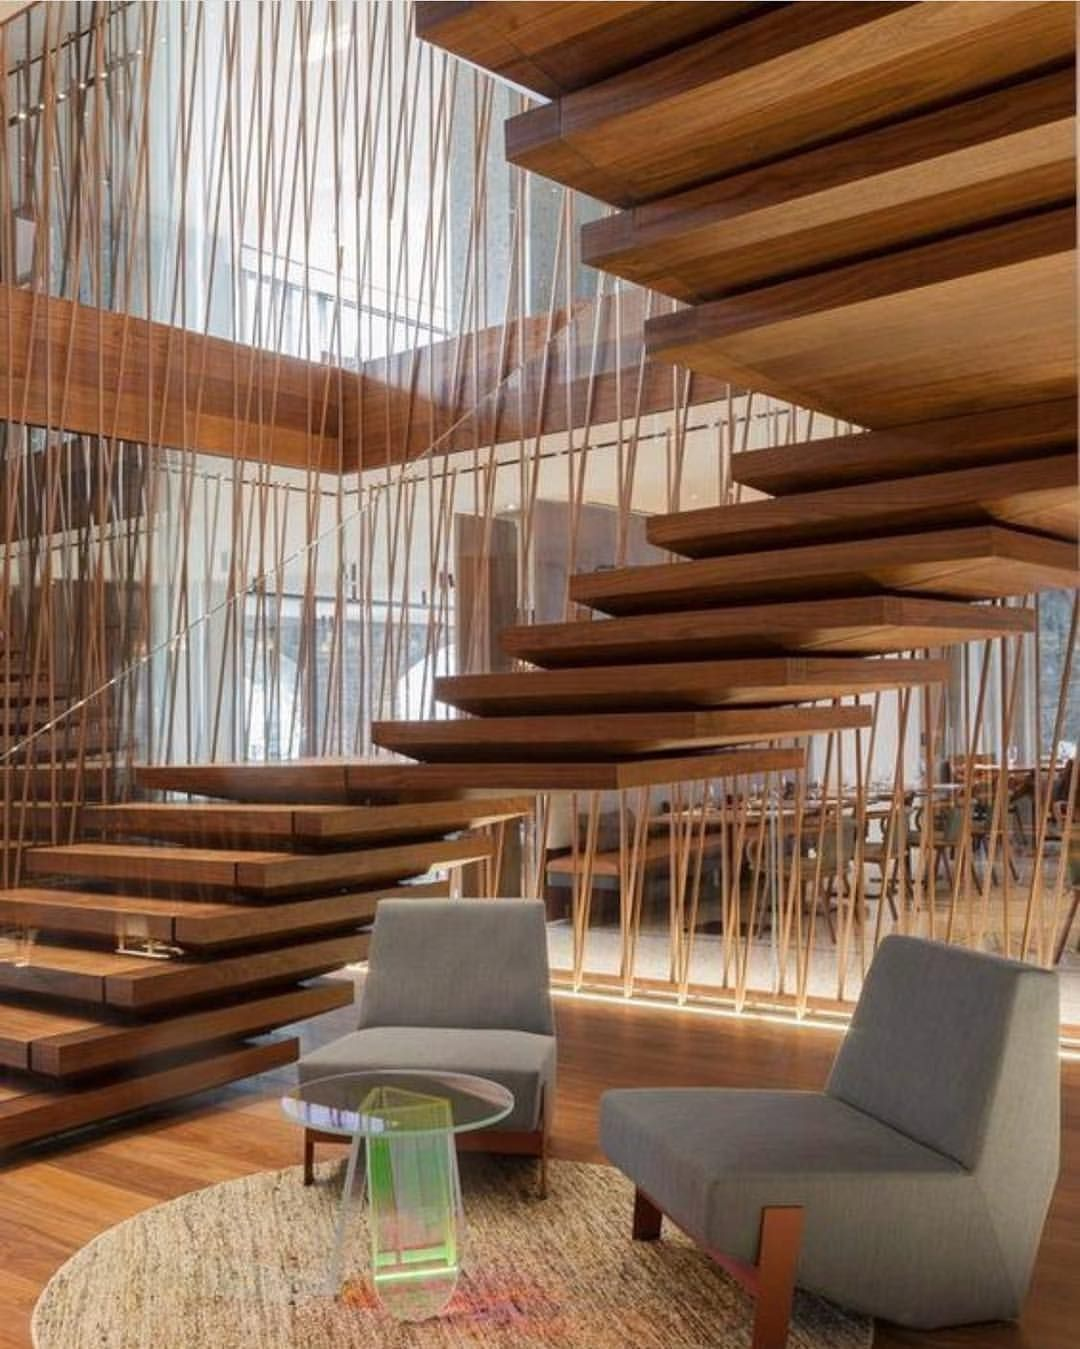 Decorating A Staircase Ideas Inspiration: We Love Stairs (@stairs_lovers) On